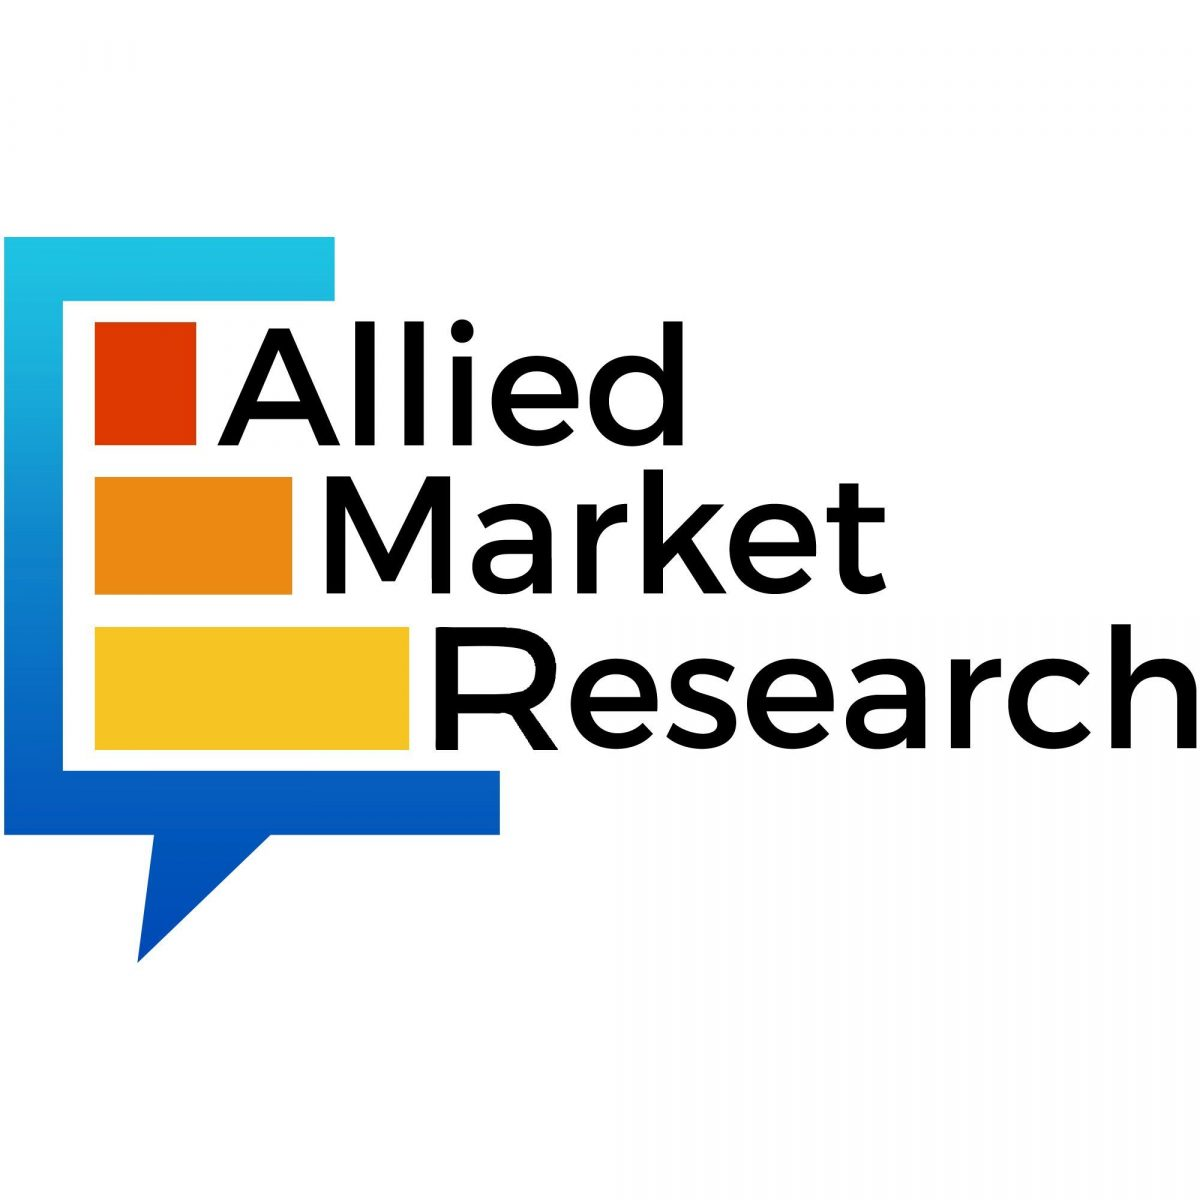 Amphibious Vehicle Market to Reach $5.02 Bn, Globally, by 2027 at 8.5% CAGR: Allied Market Research